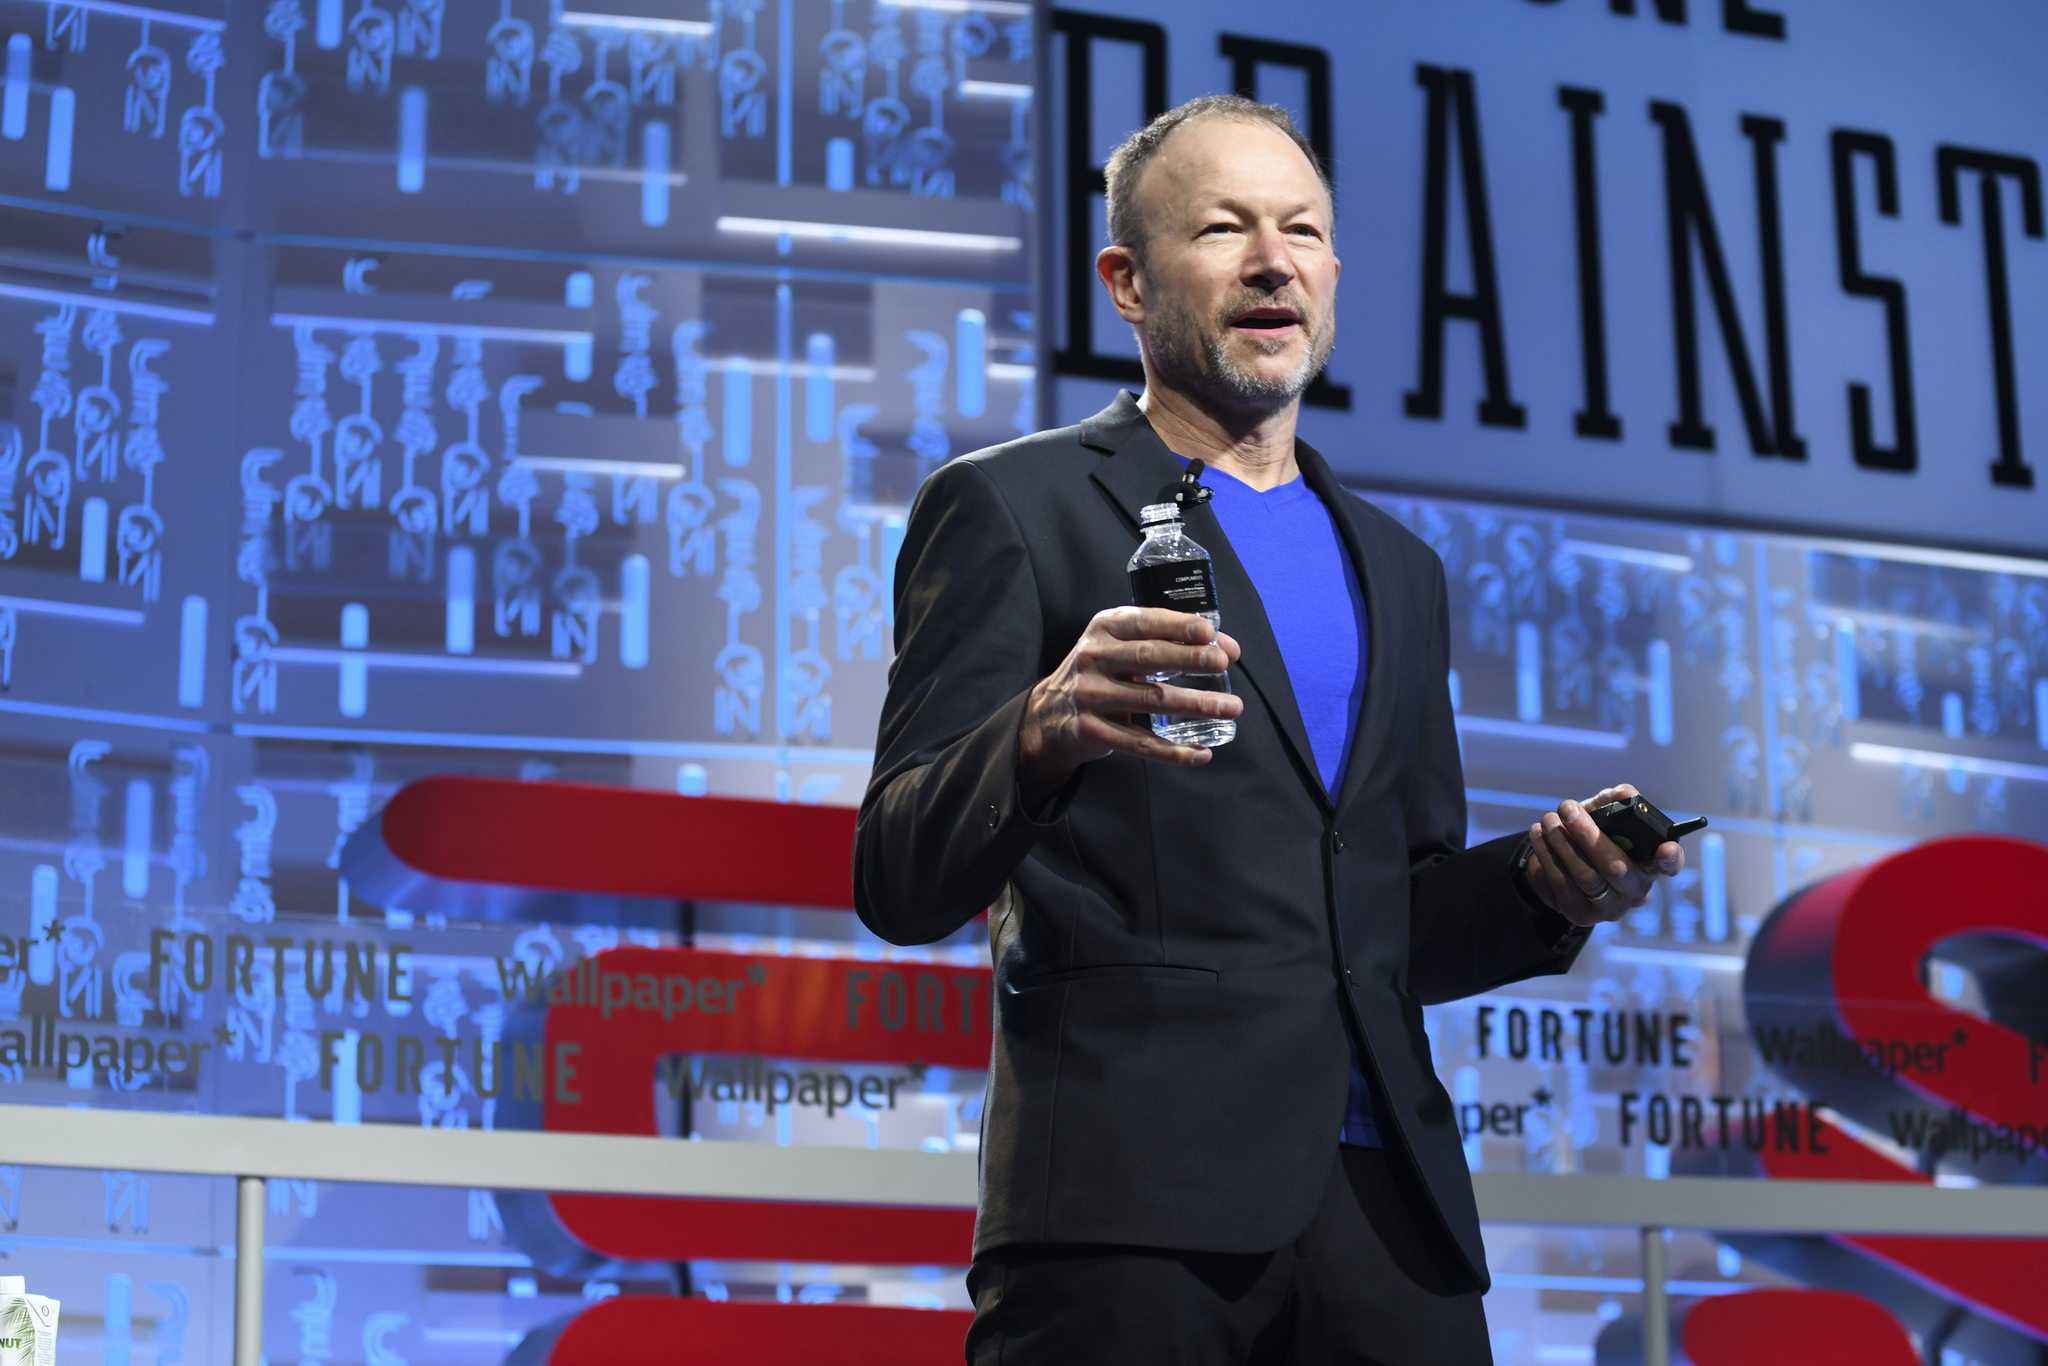 Invisible Design principal Harry West speaking at the 2019 Fortune Brainstorm Design conference in Singapore.